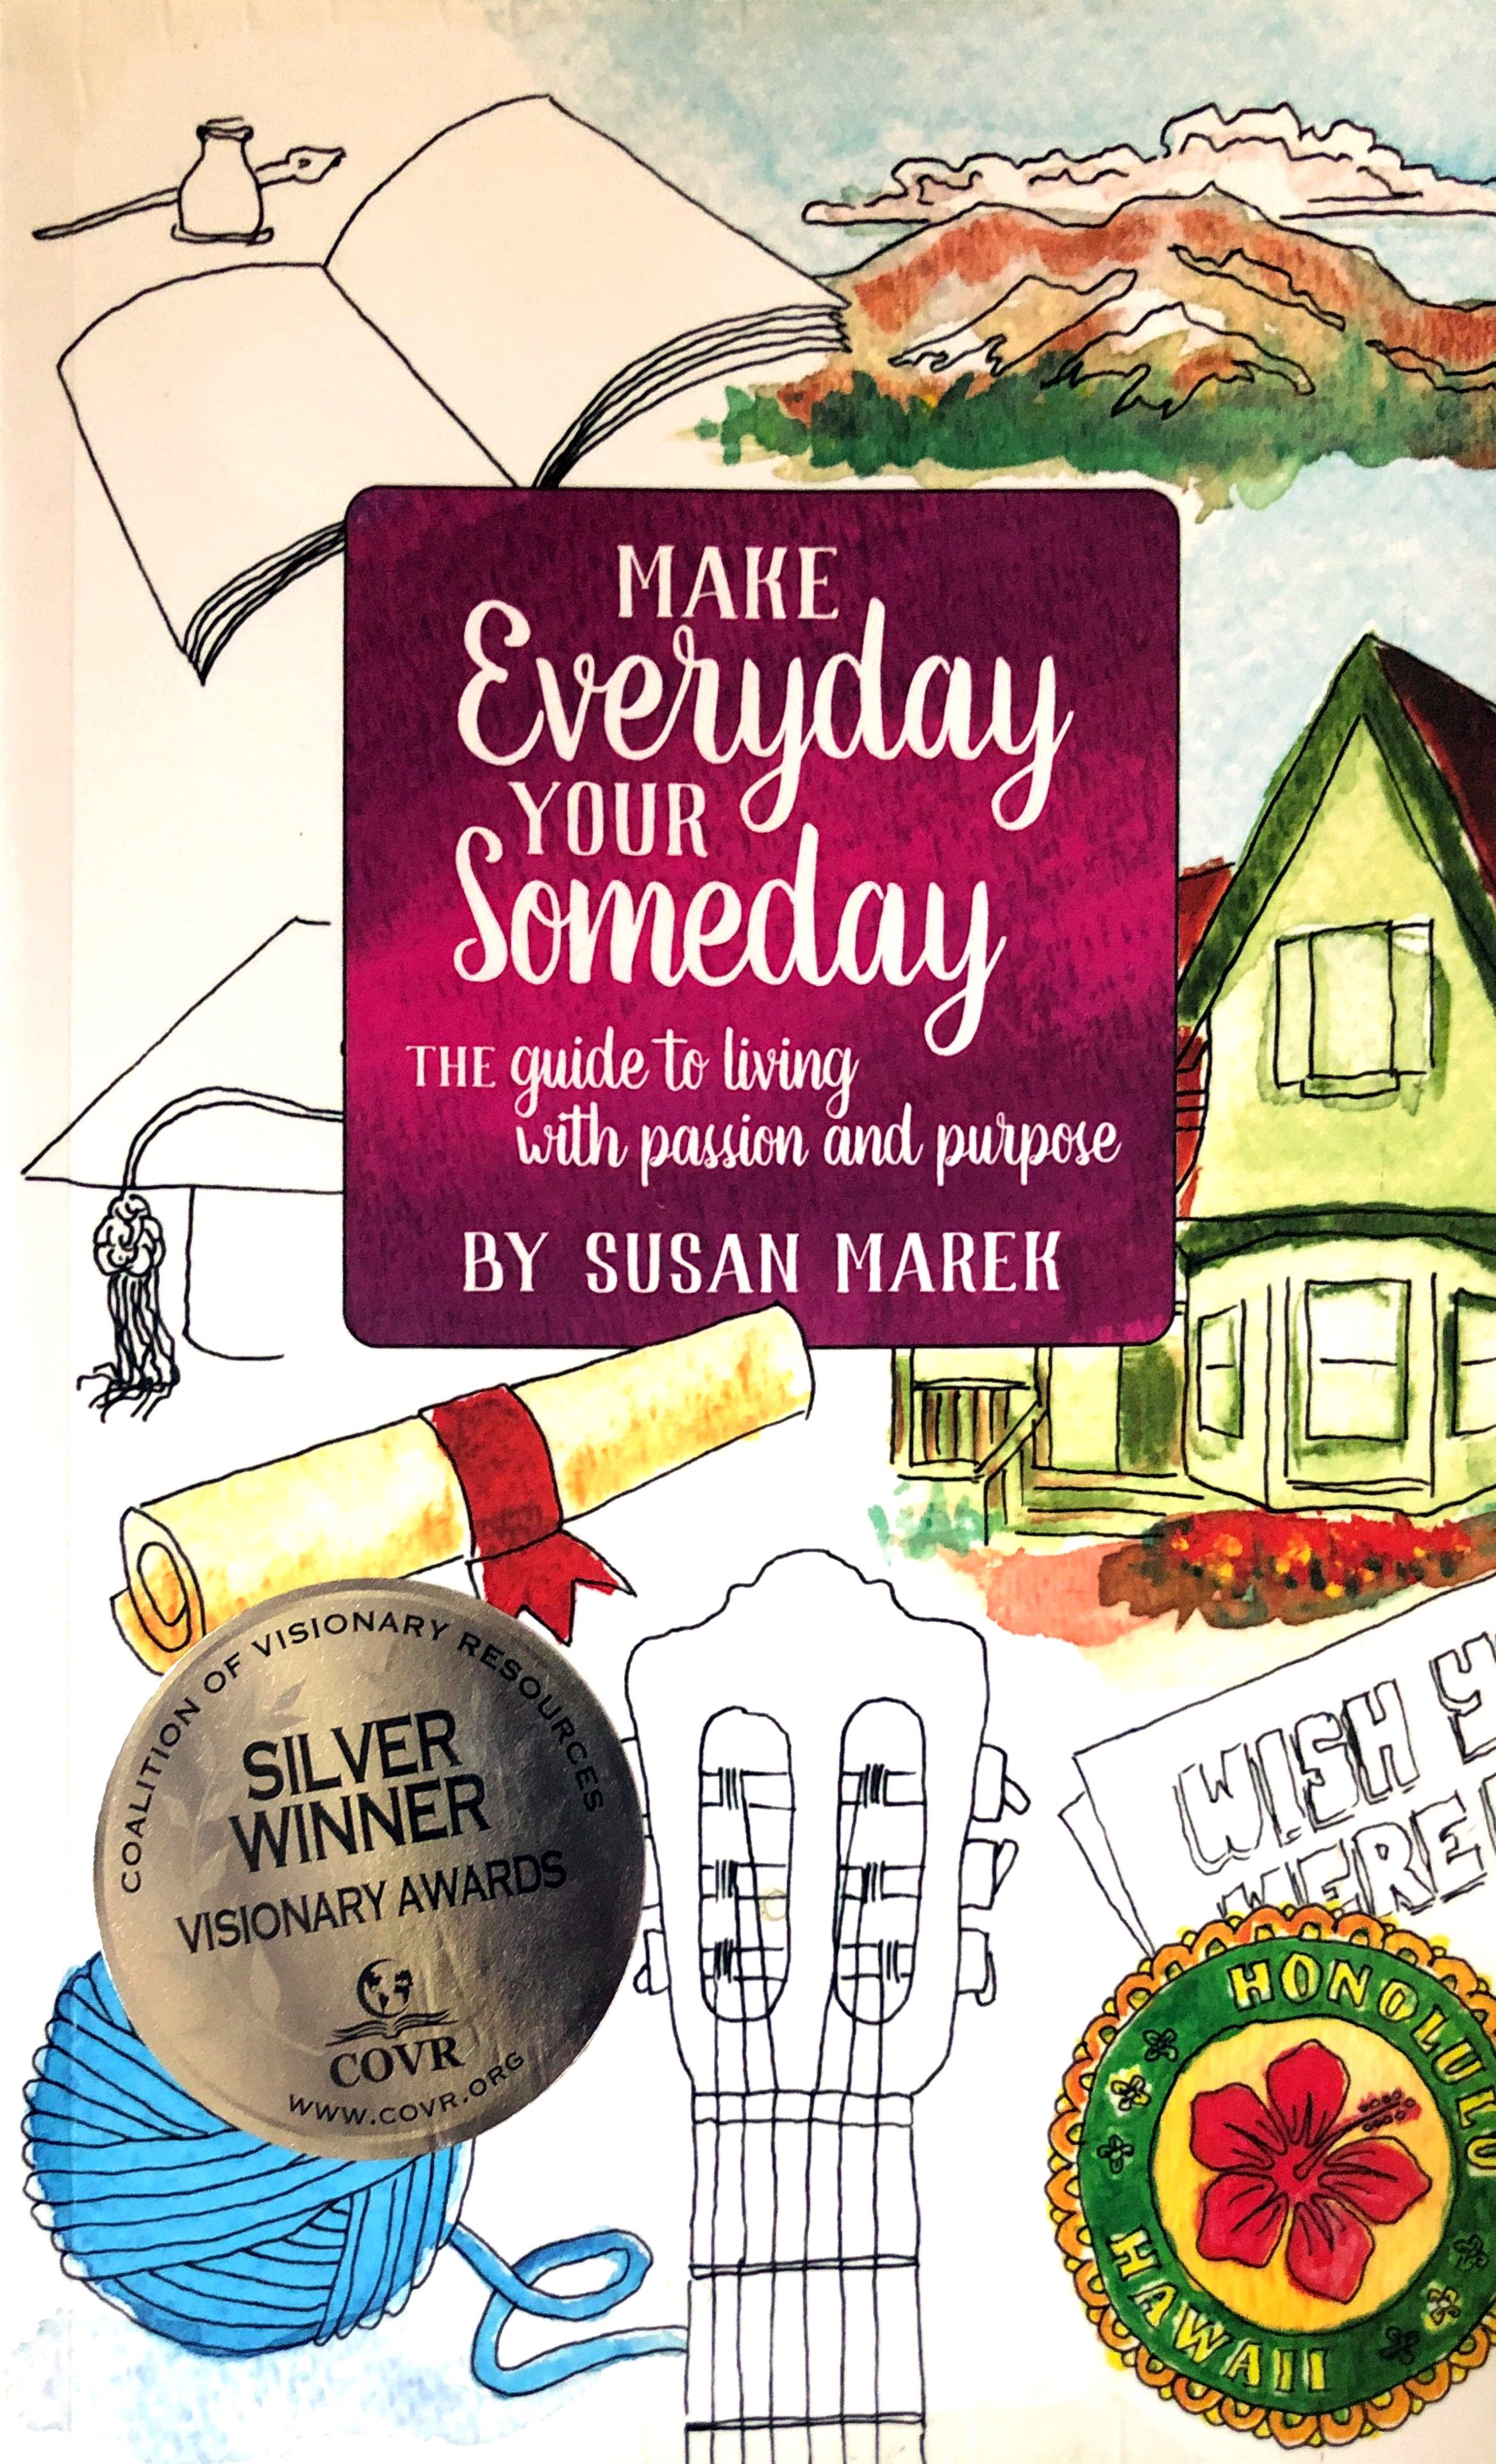 Make Everyday Your Someday: THE Guide to Living with Passion and Purpose - This book is available on Amazon.com BarnesandNoble.com, Powells.com, as well as other online retailers. It is also available to order from your local bookshop as well.